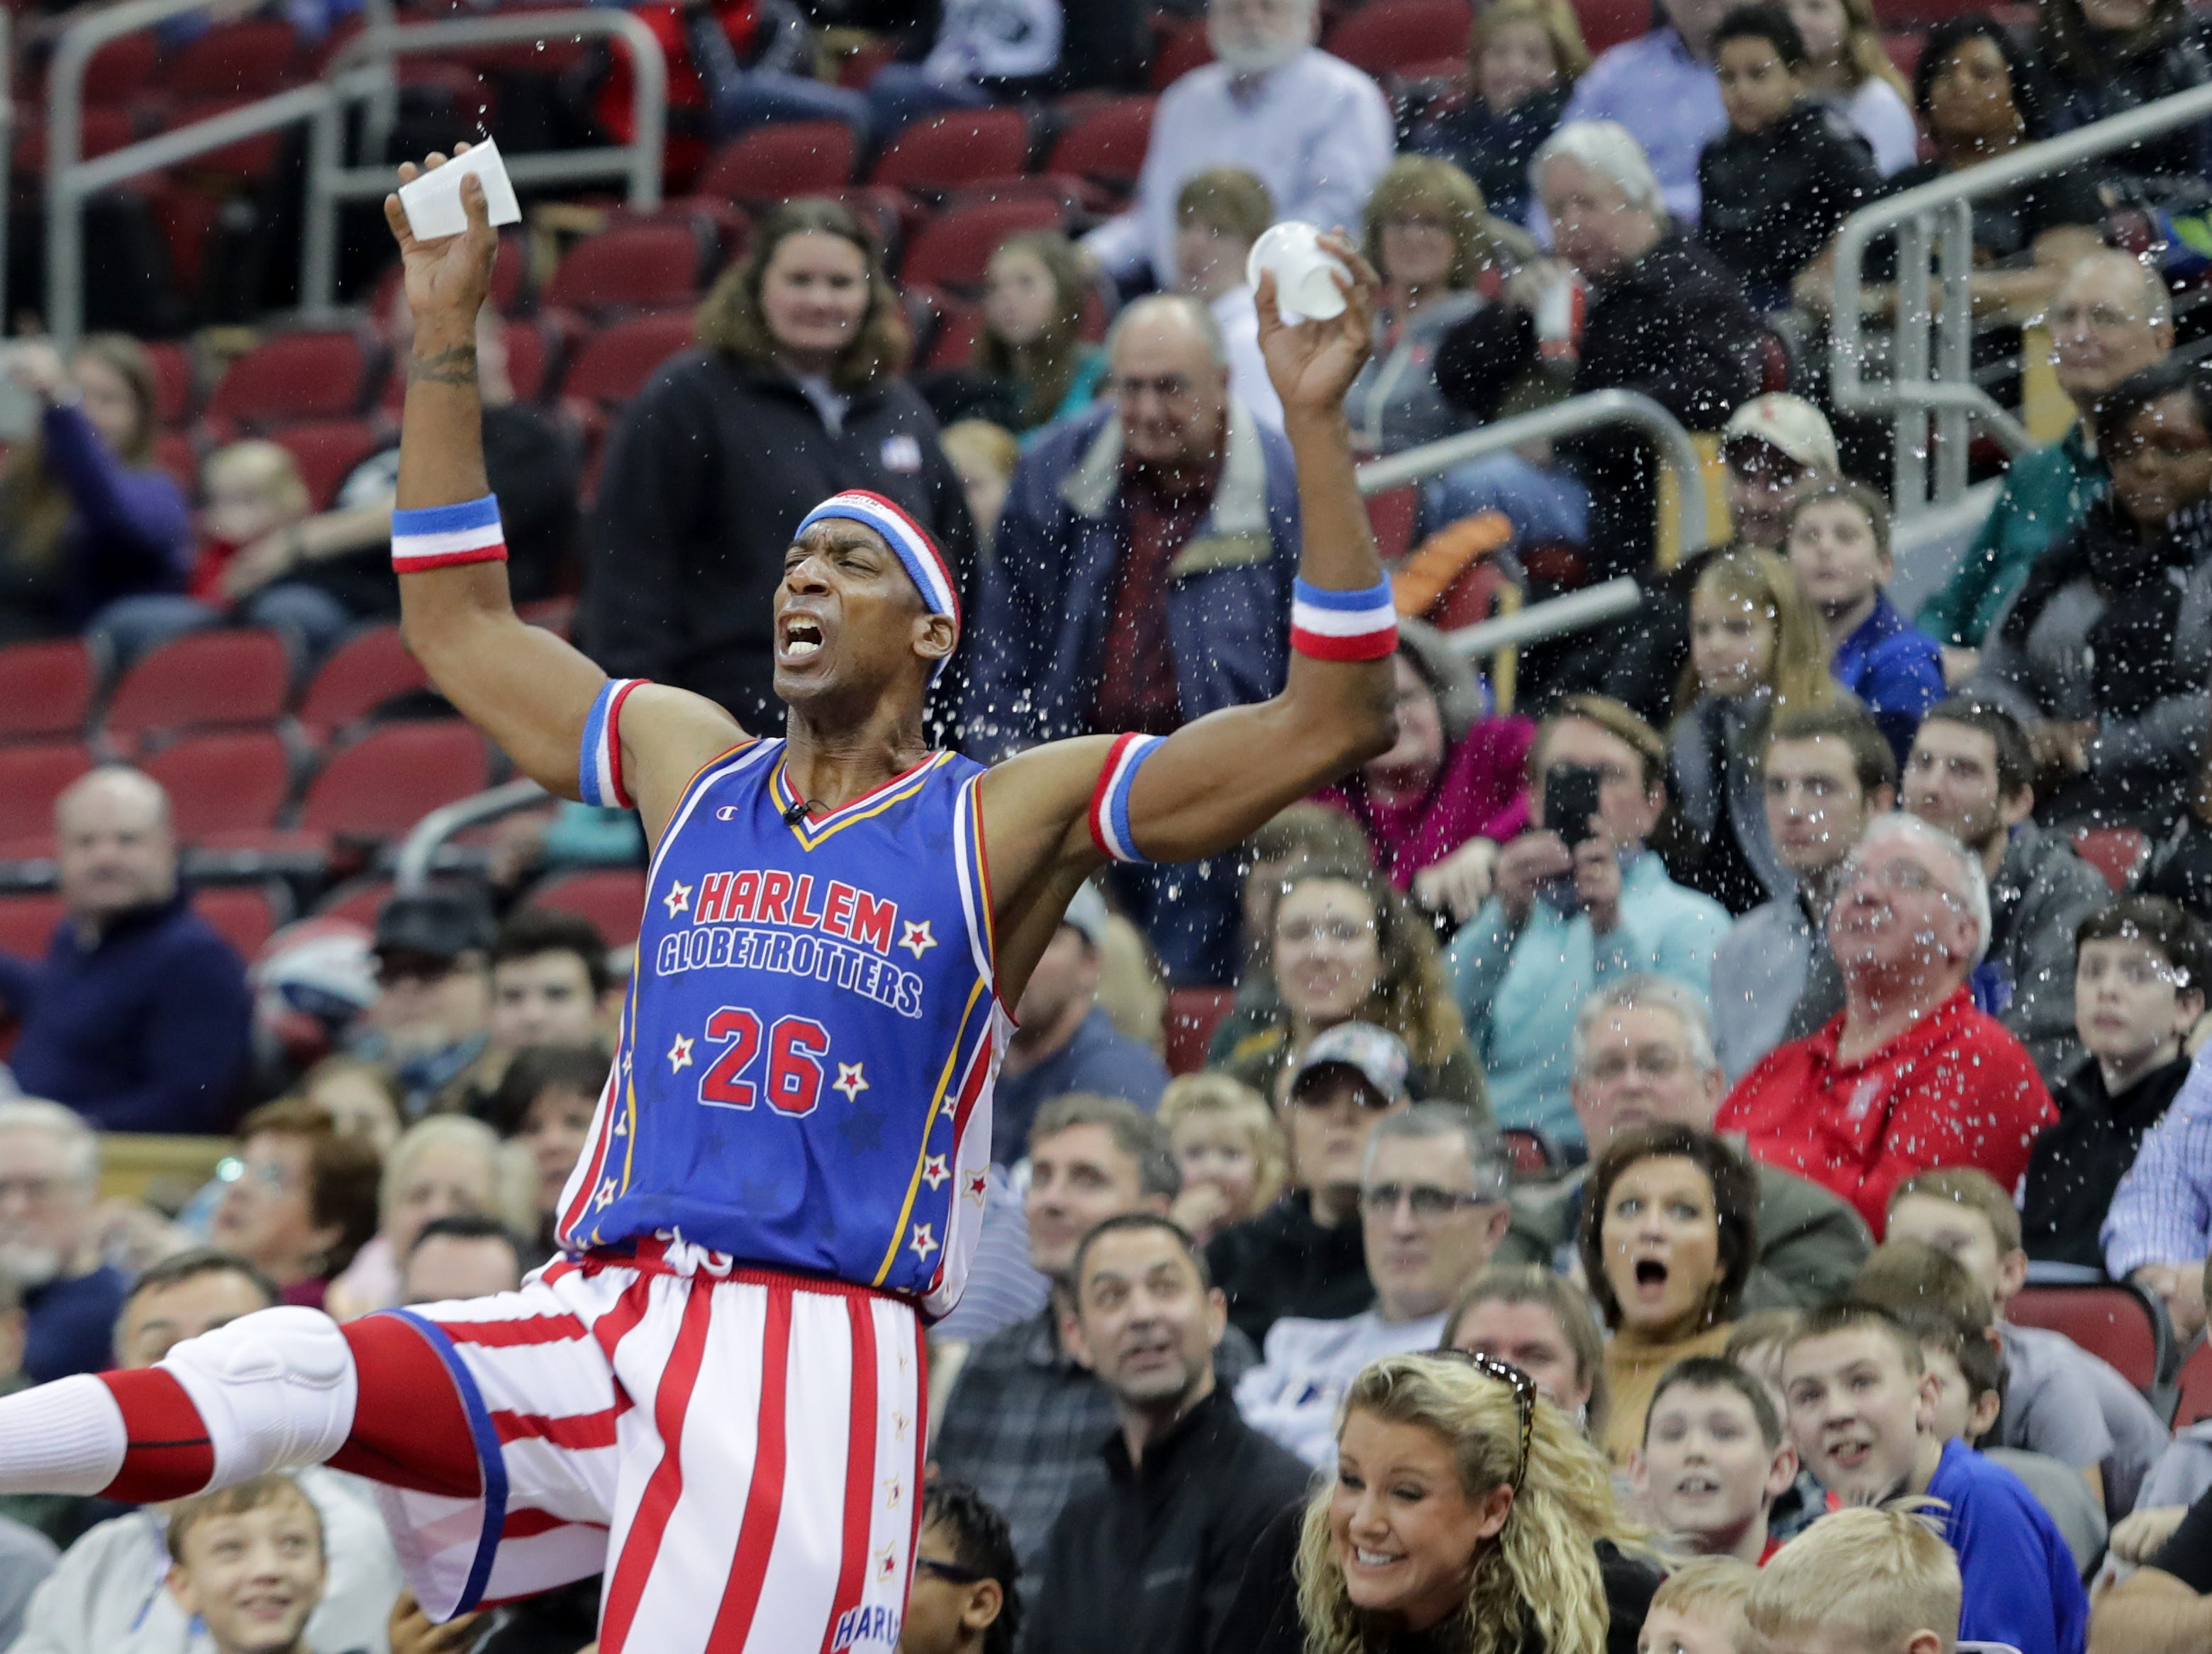 Harlem Globetrotters' Hi-Lite throws water on the crowd after a teammate missed a free throw.